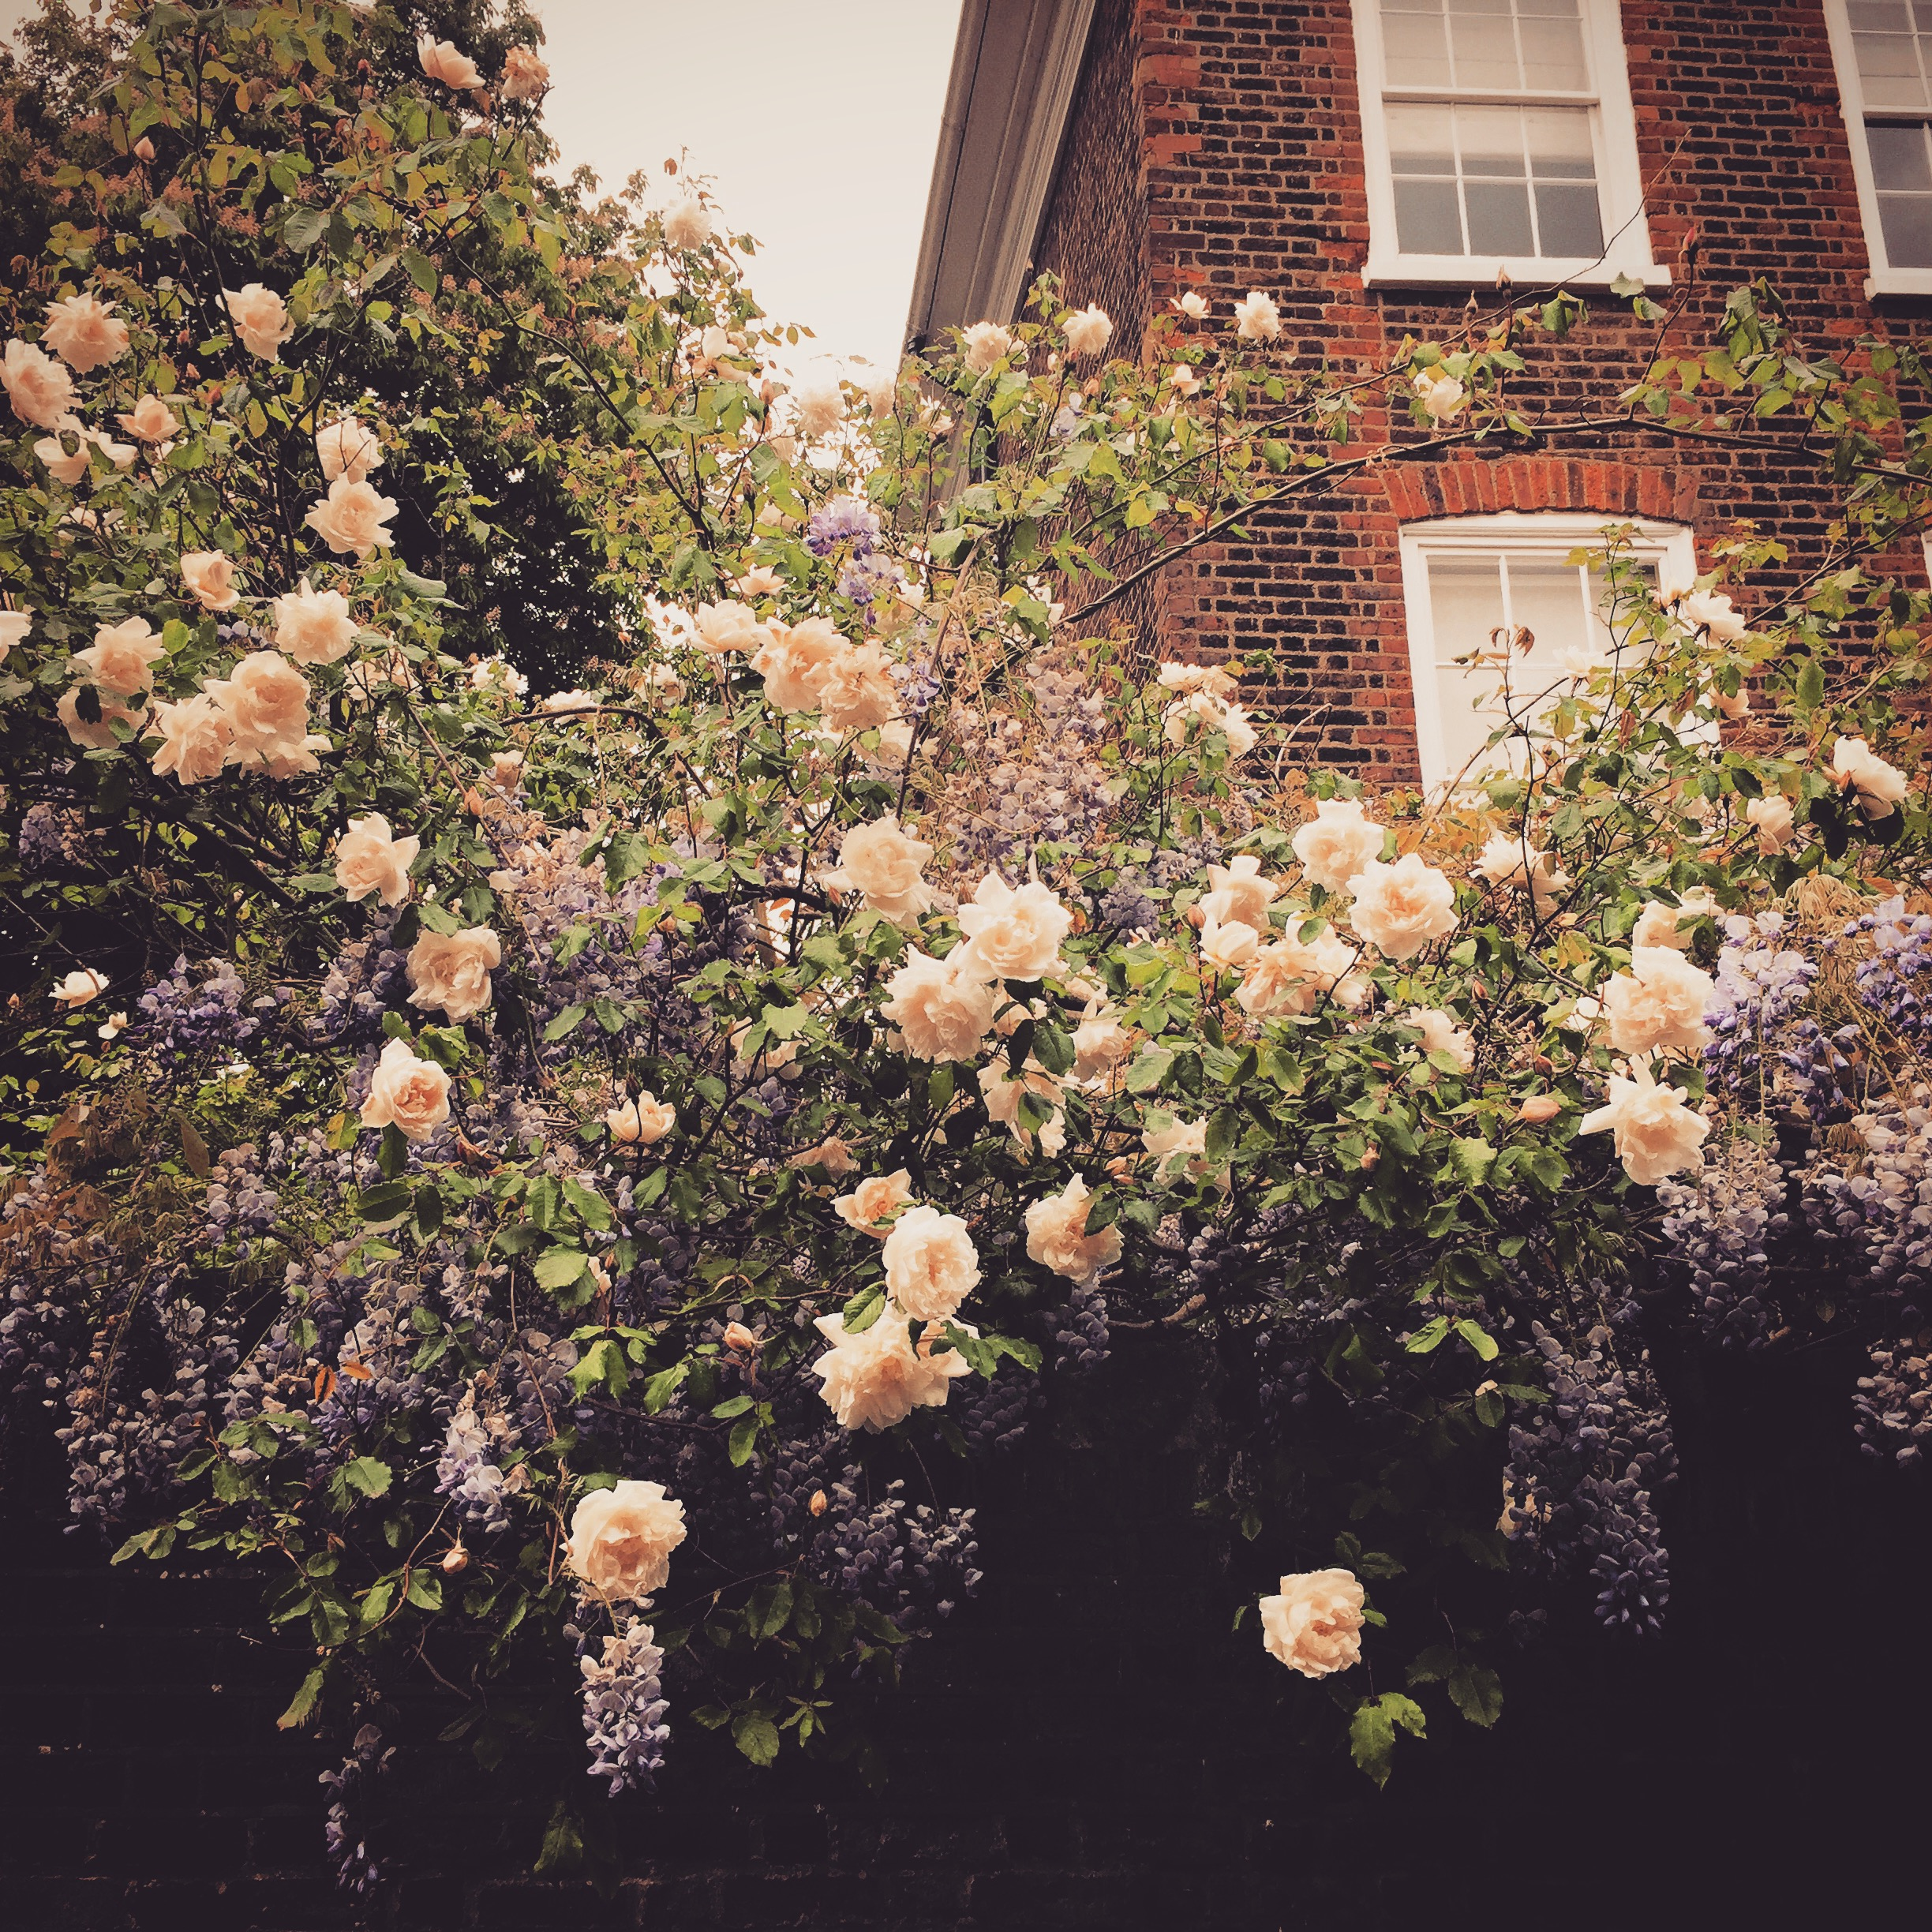 iPhone photography | roses | photographer